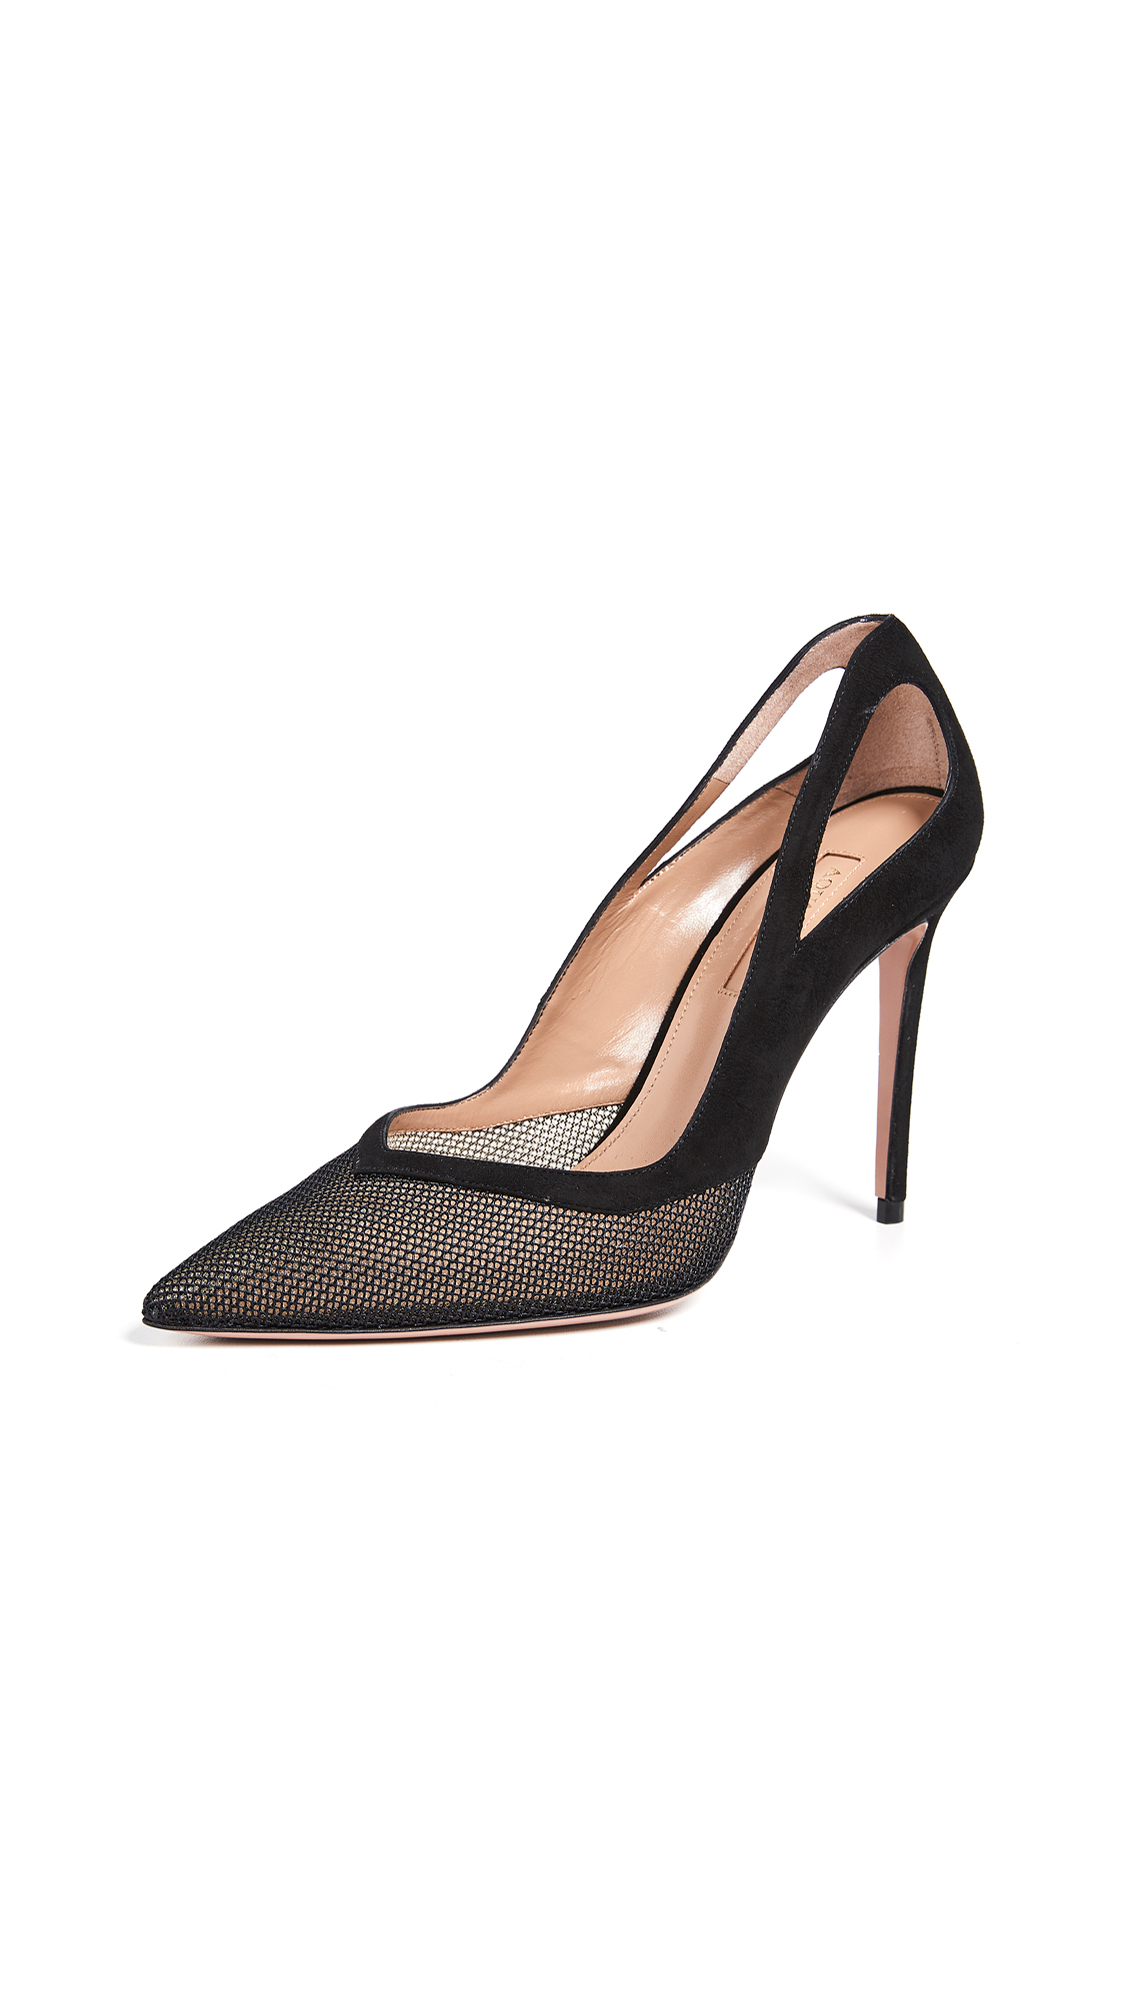 Aquazzura Shiva Mesh Pumps - Black